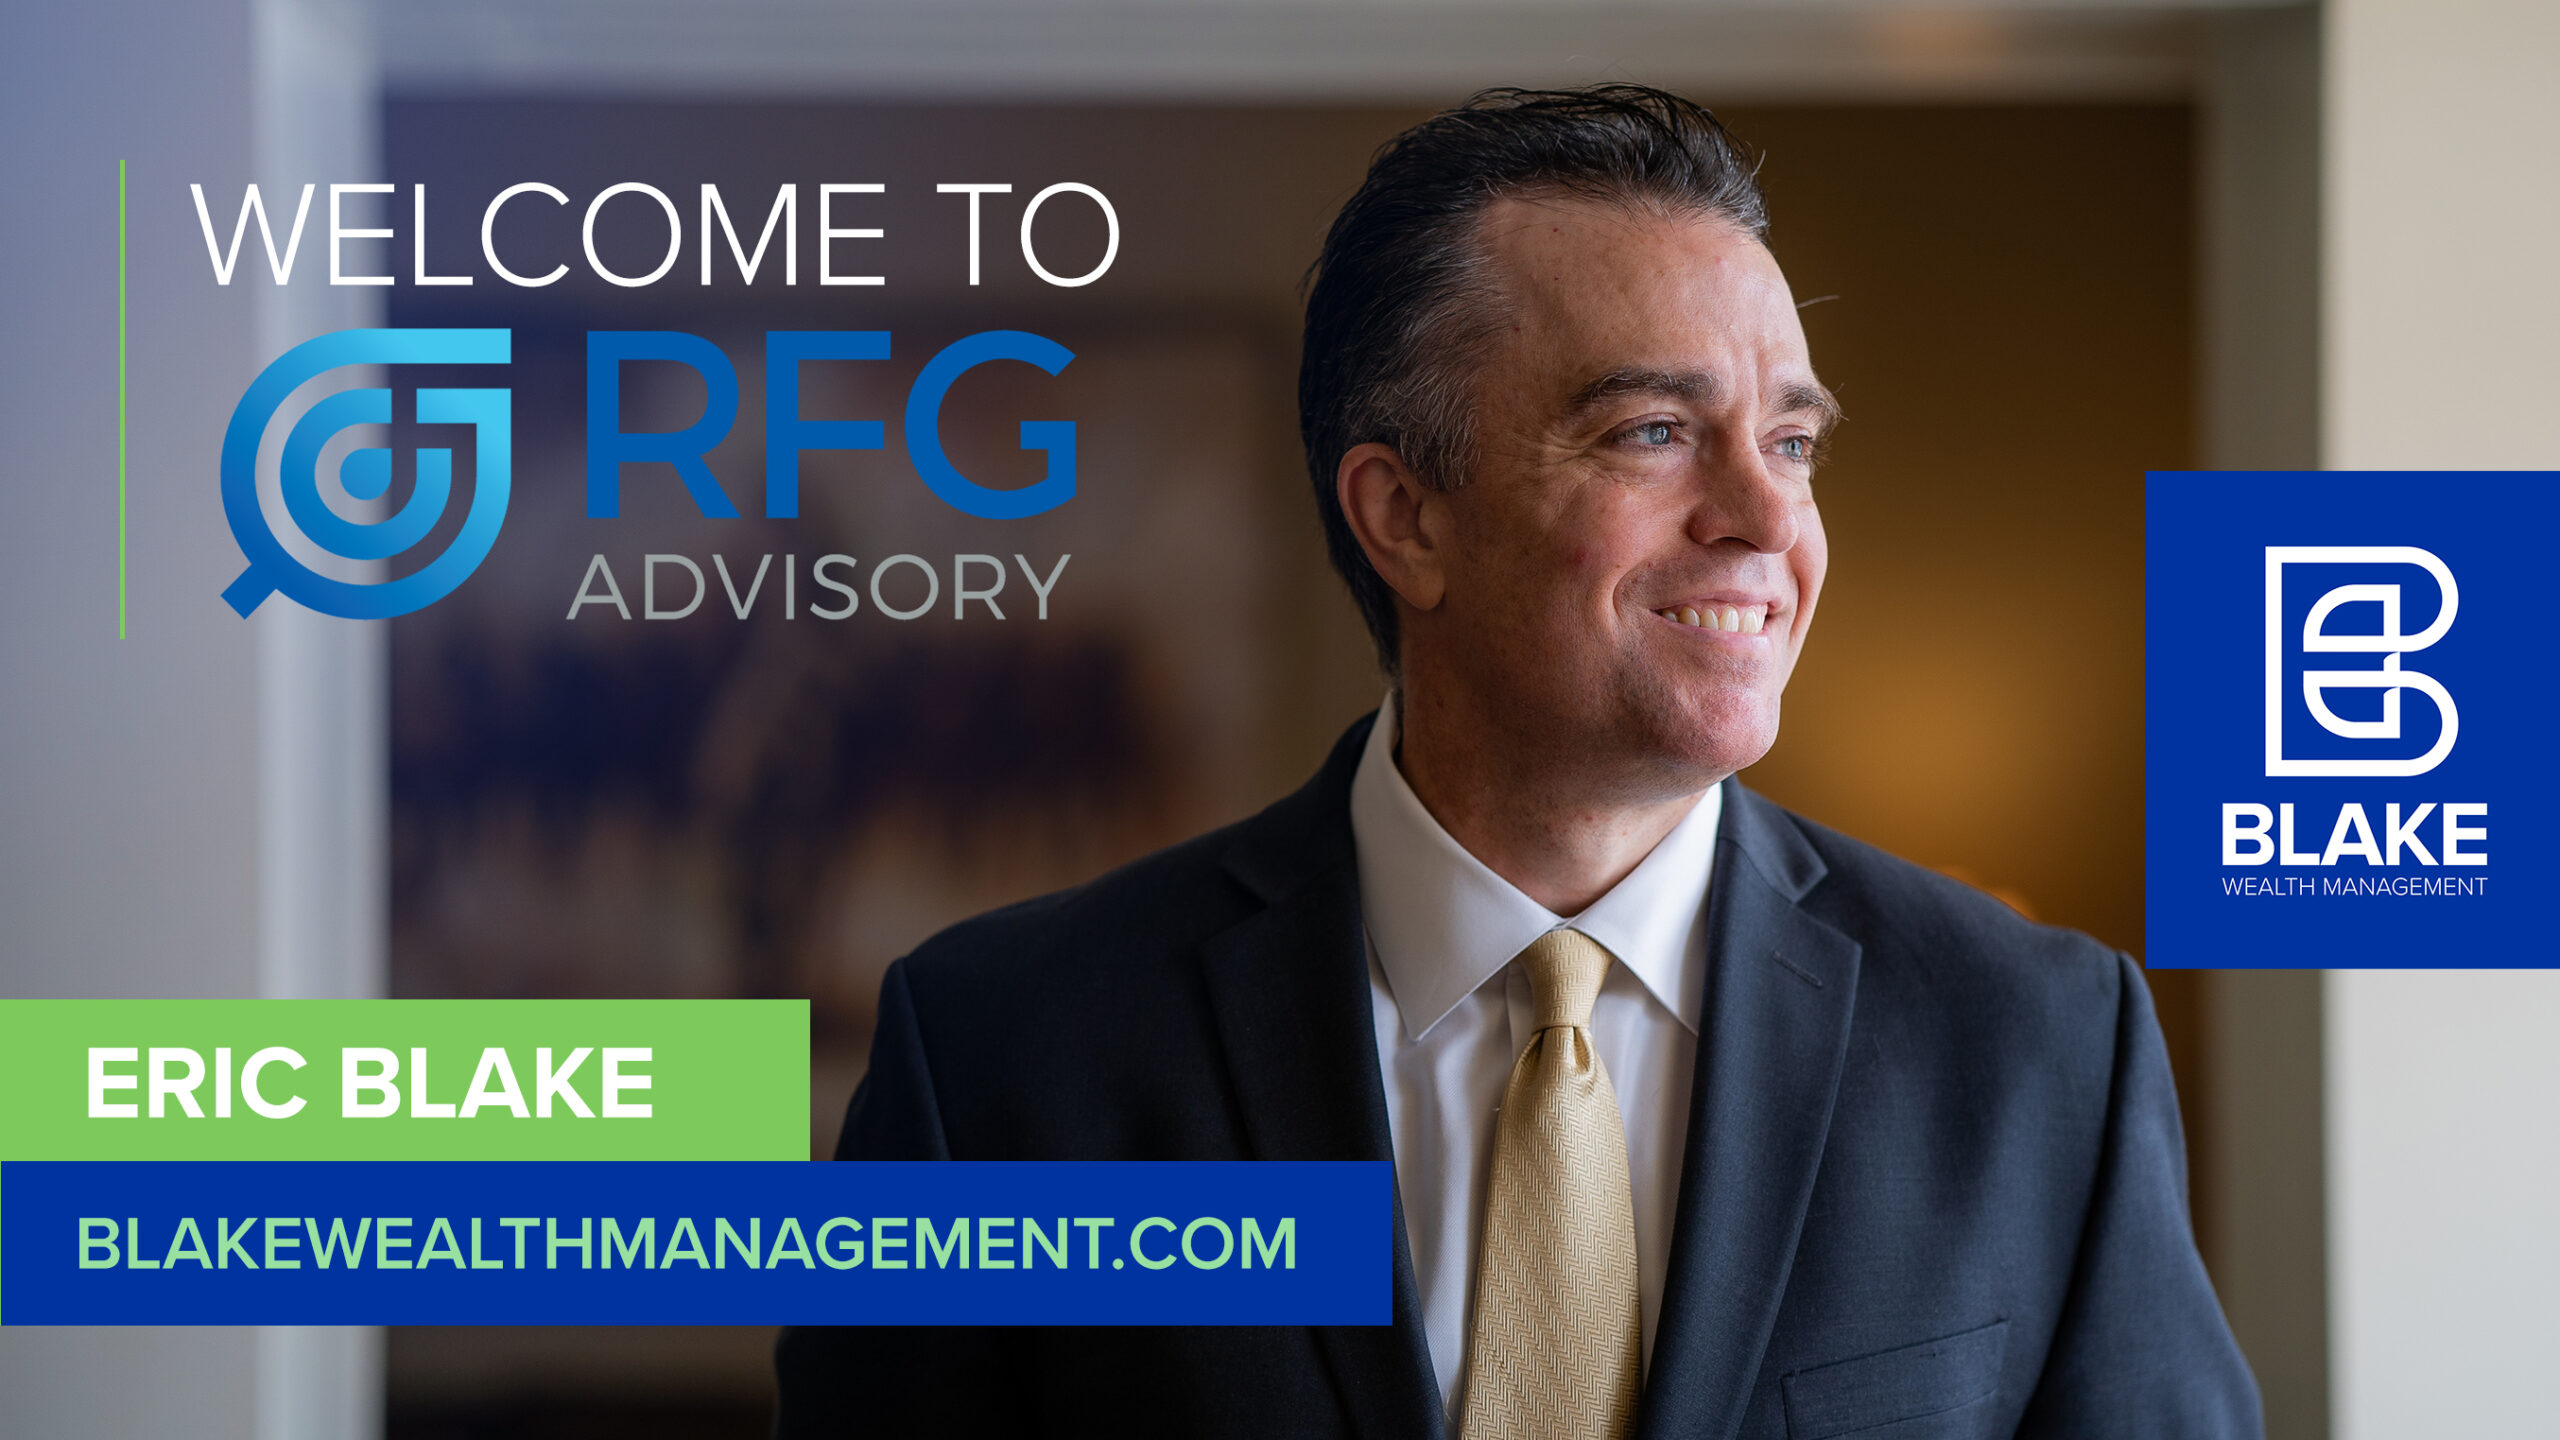 Eric Blake, founder of Blake Wealth Management, has chosen RFG Advisory